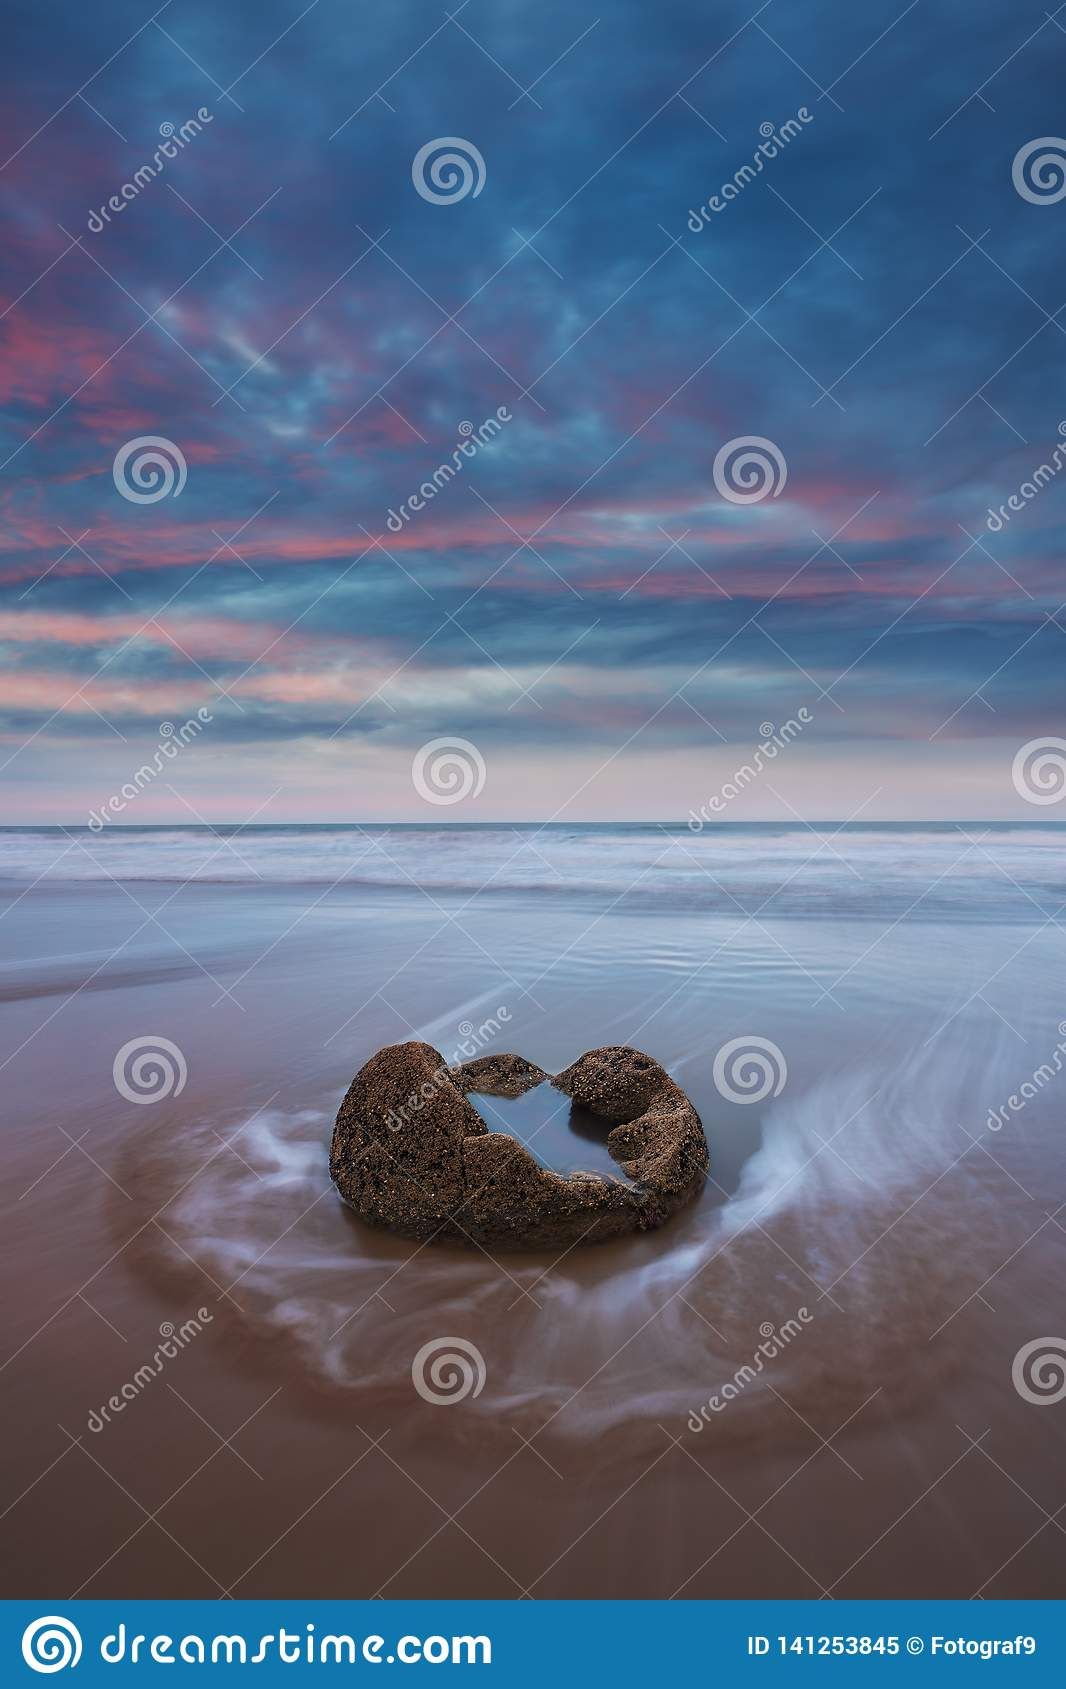 Moeraki Boulders on the Koekohe beach, Eastern coast of New Zealand. Sunset and long exposure and a dramatic dawn sky.